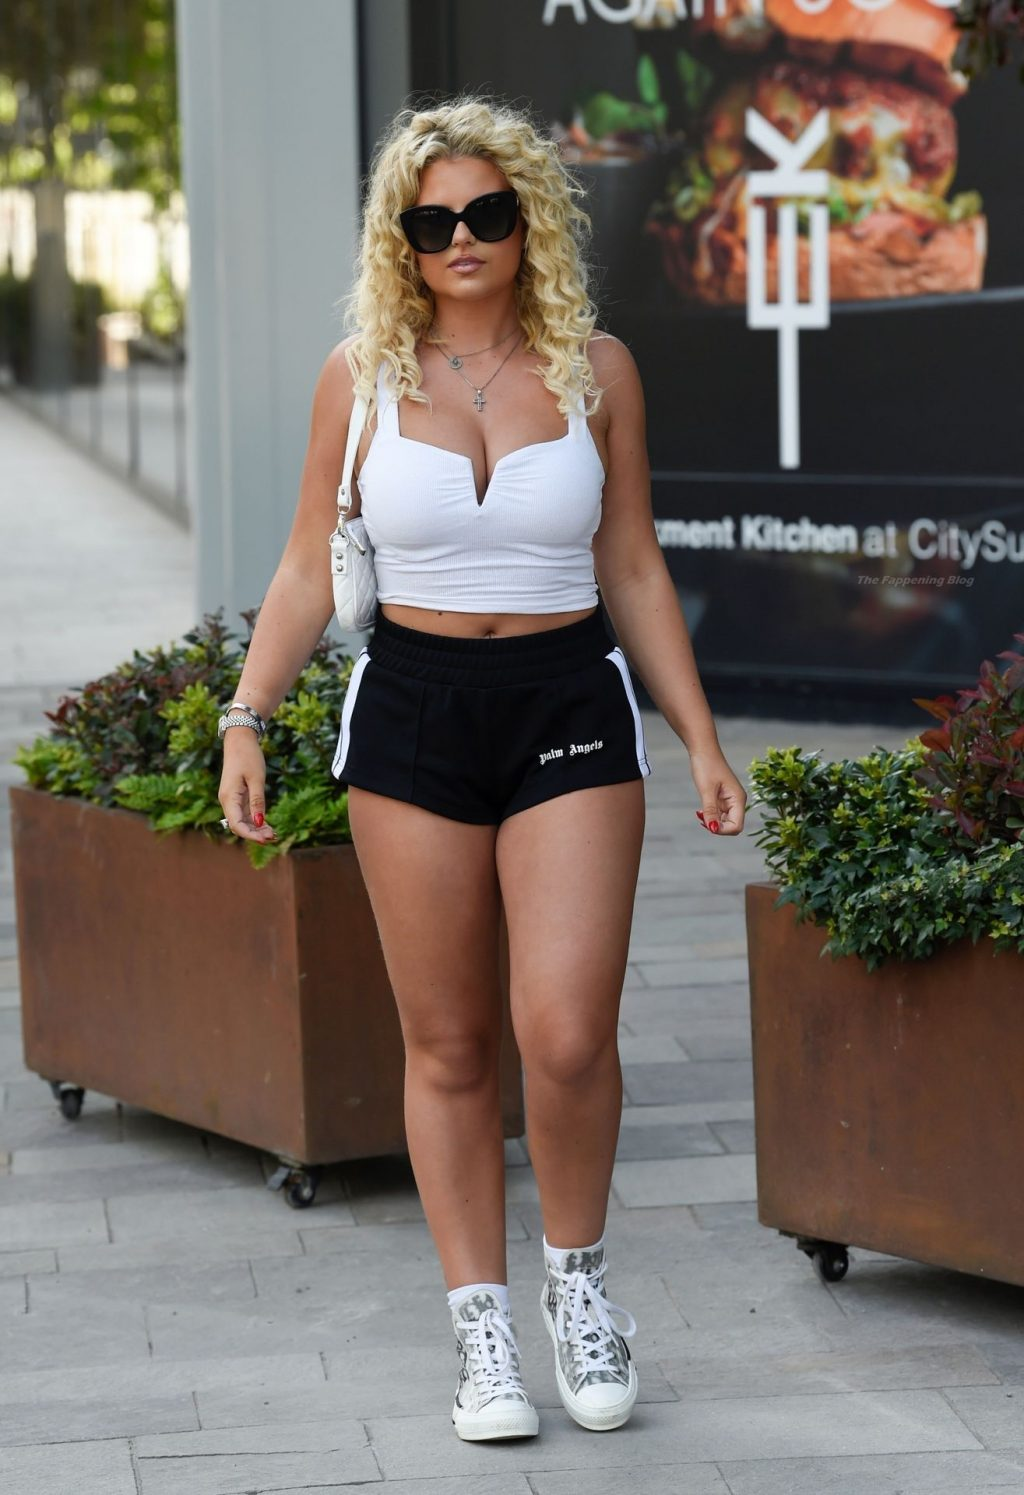 Apollonia Llewellyn Poses in Manchester (44 Photos)